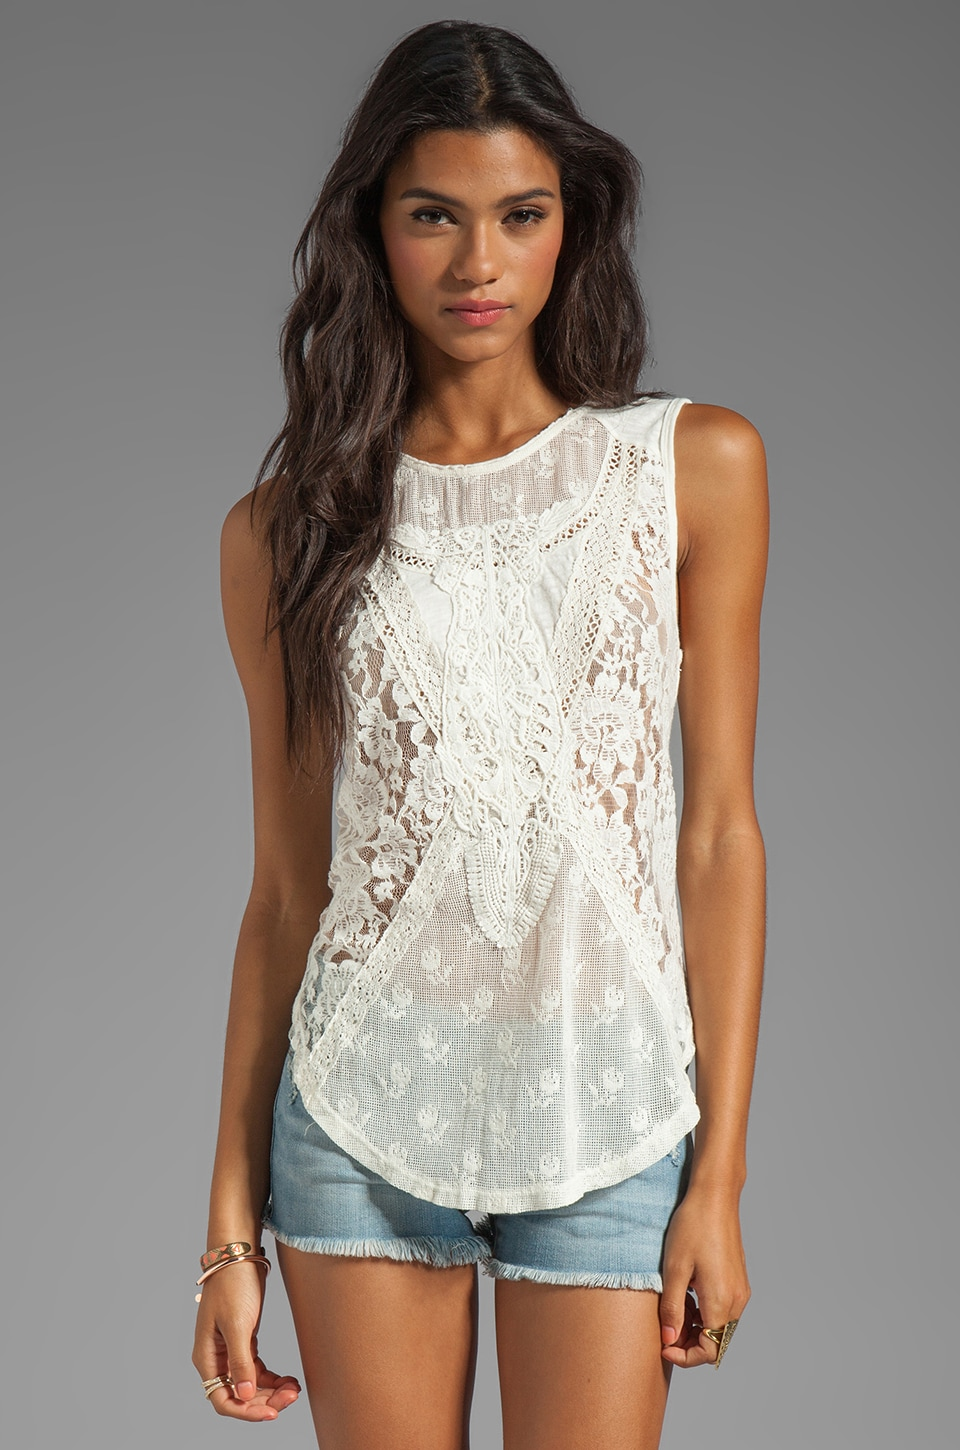 Free People Not So Sweet Victorian Top in Ivory